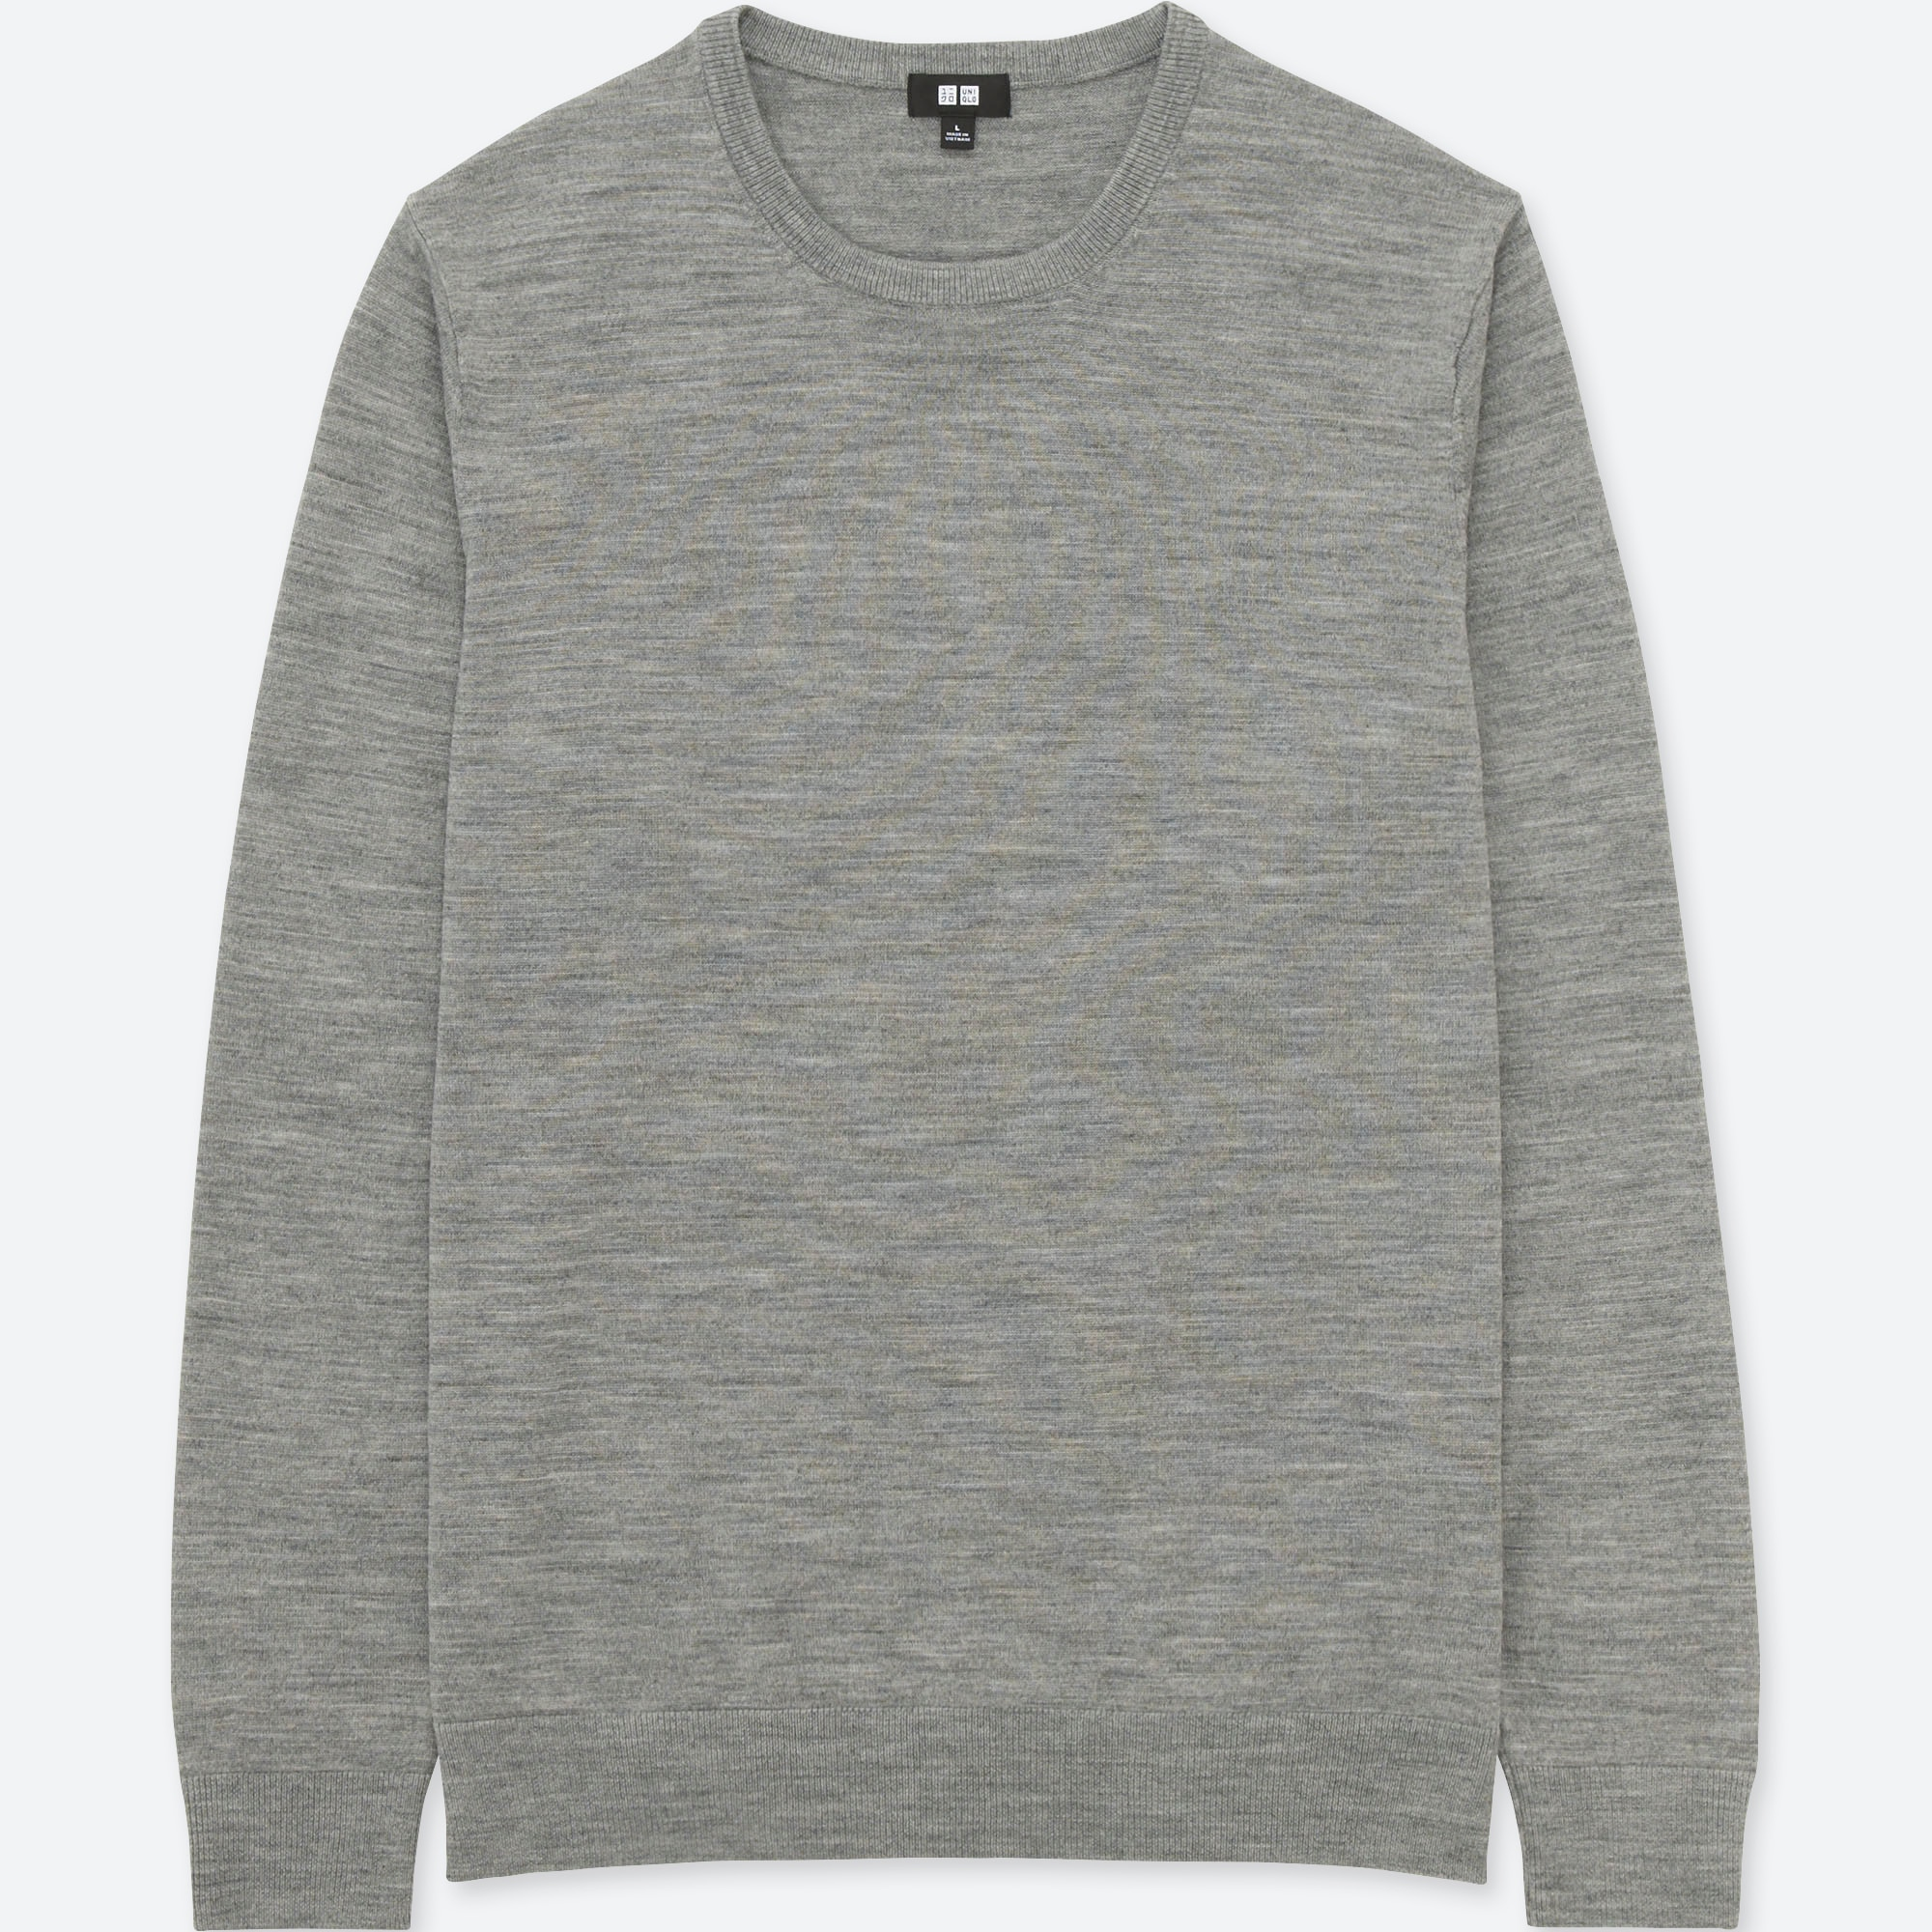 MEN EXTRA FINE MERINO CREW NECK LONG SLEEVE SWEATER